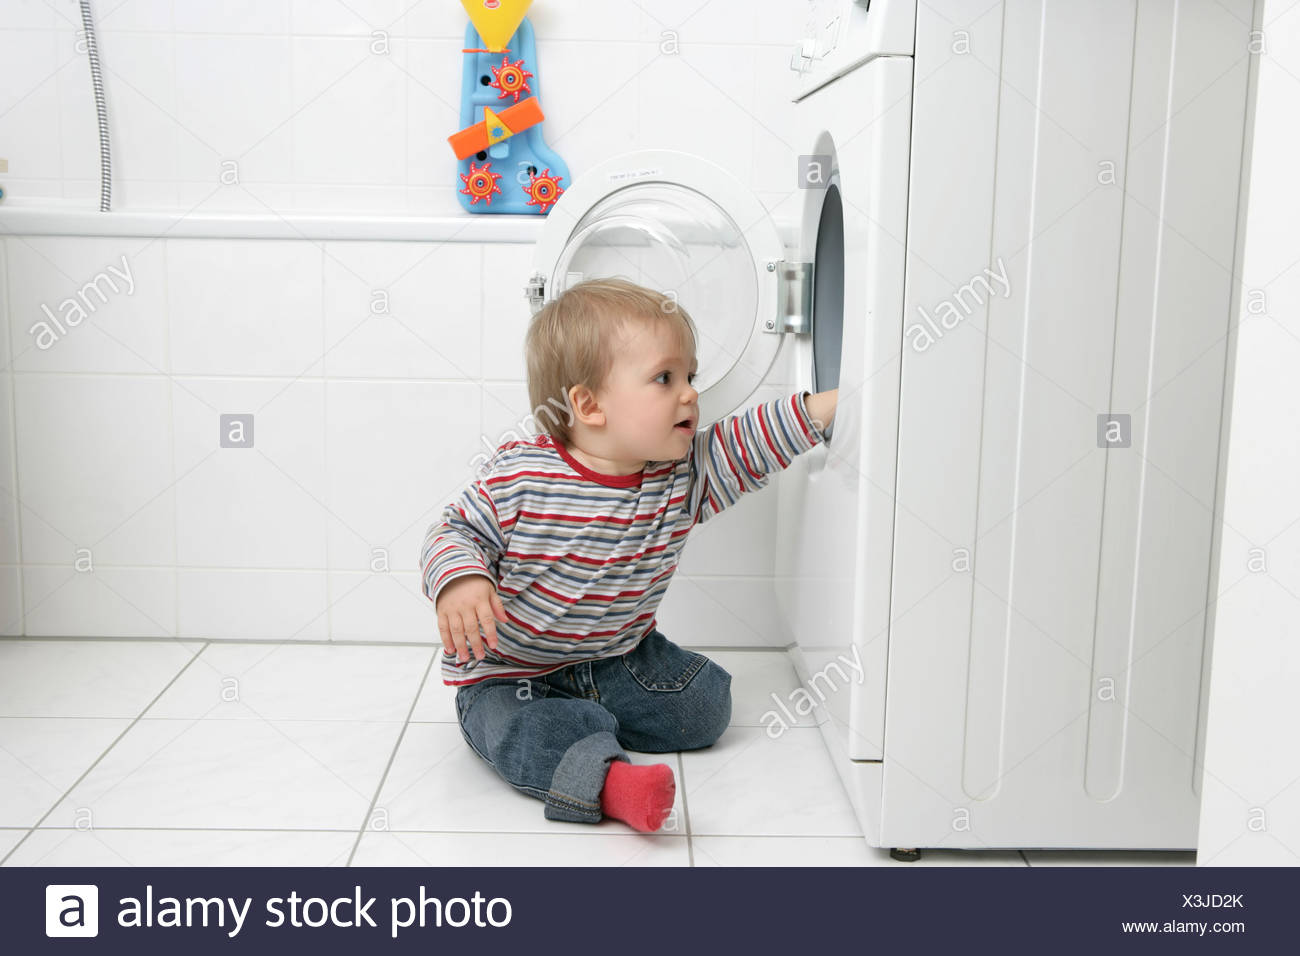 why is my daughter sitting on the washing machine